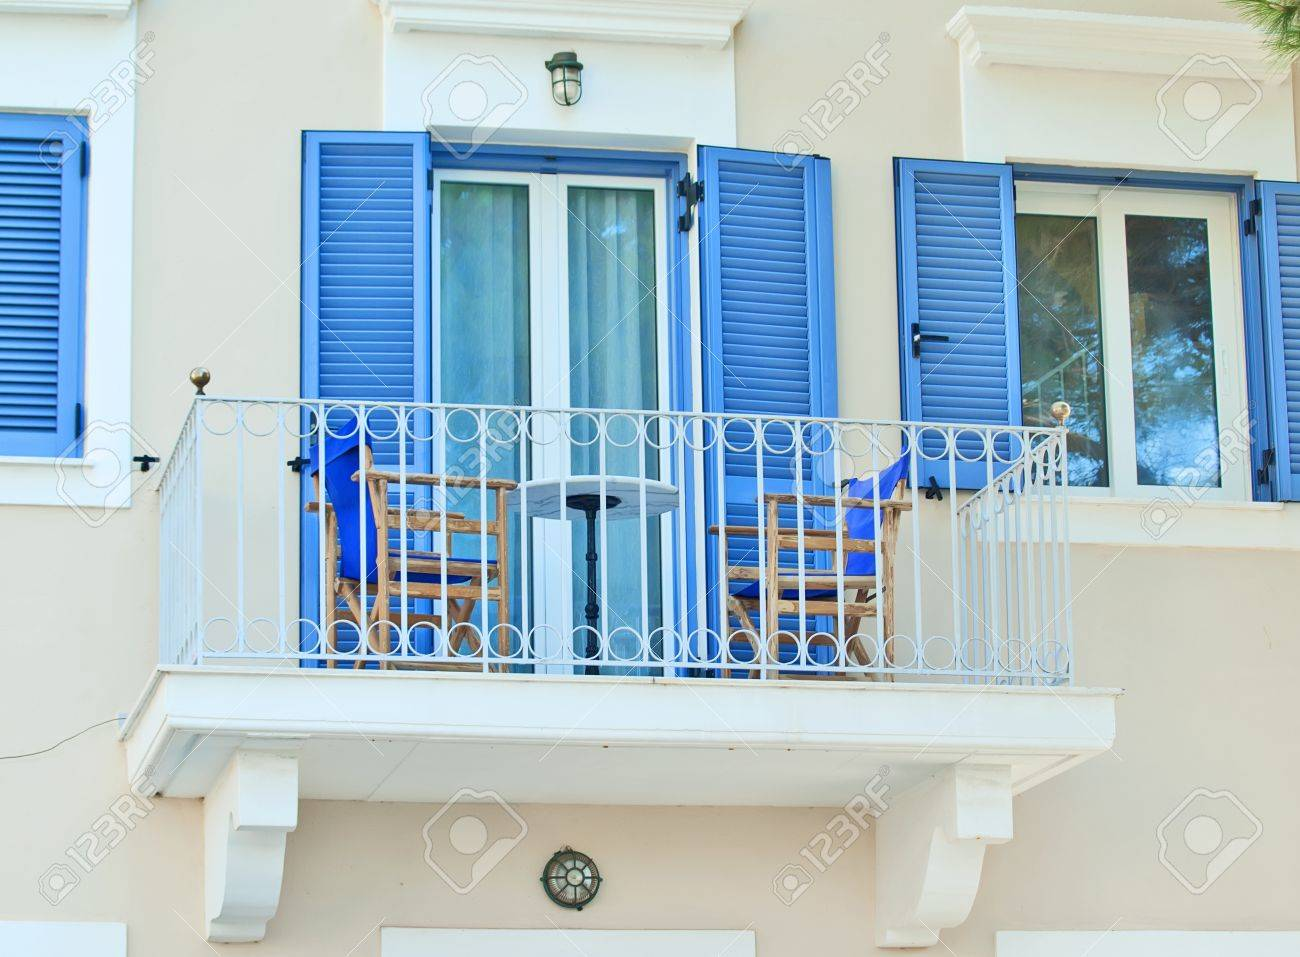 traditional greek blue windows  can be used for background Stock Photo - 11252192